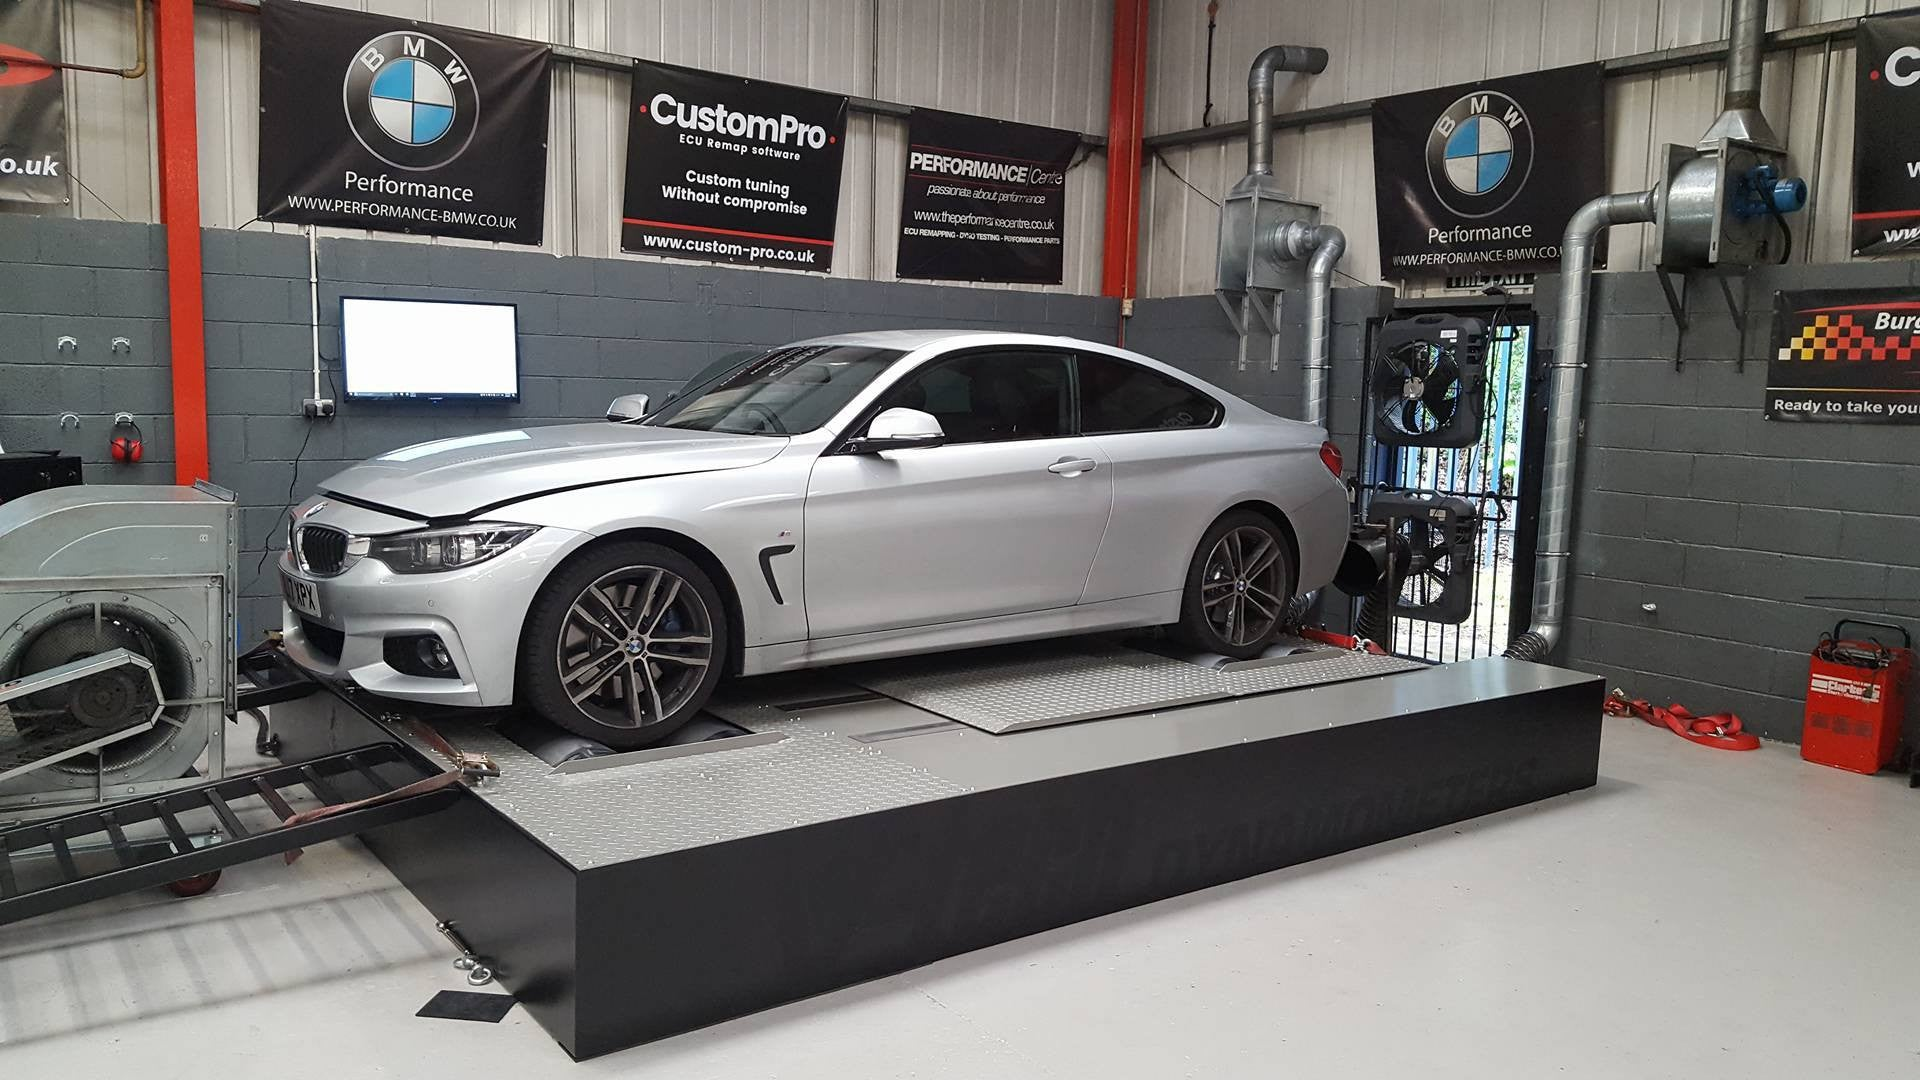 BMW 435xd - CustomPro remap software